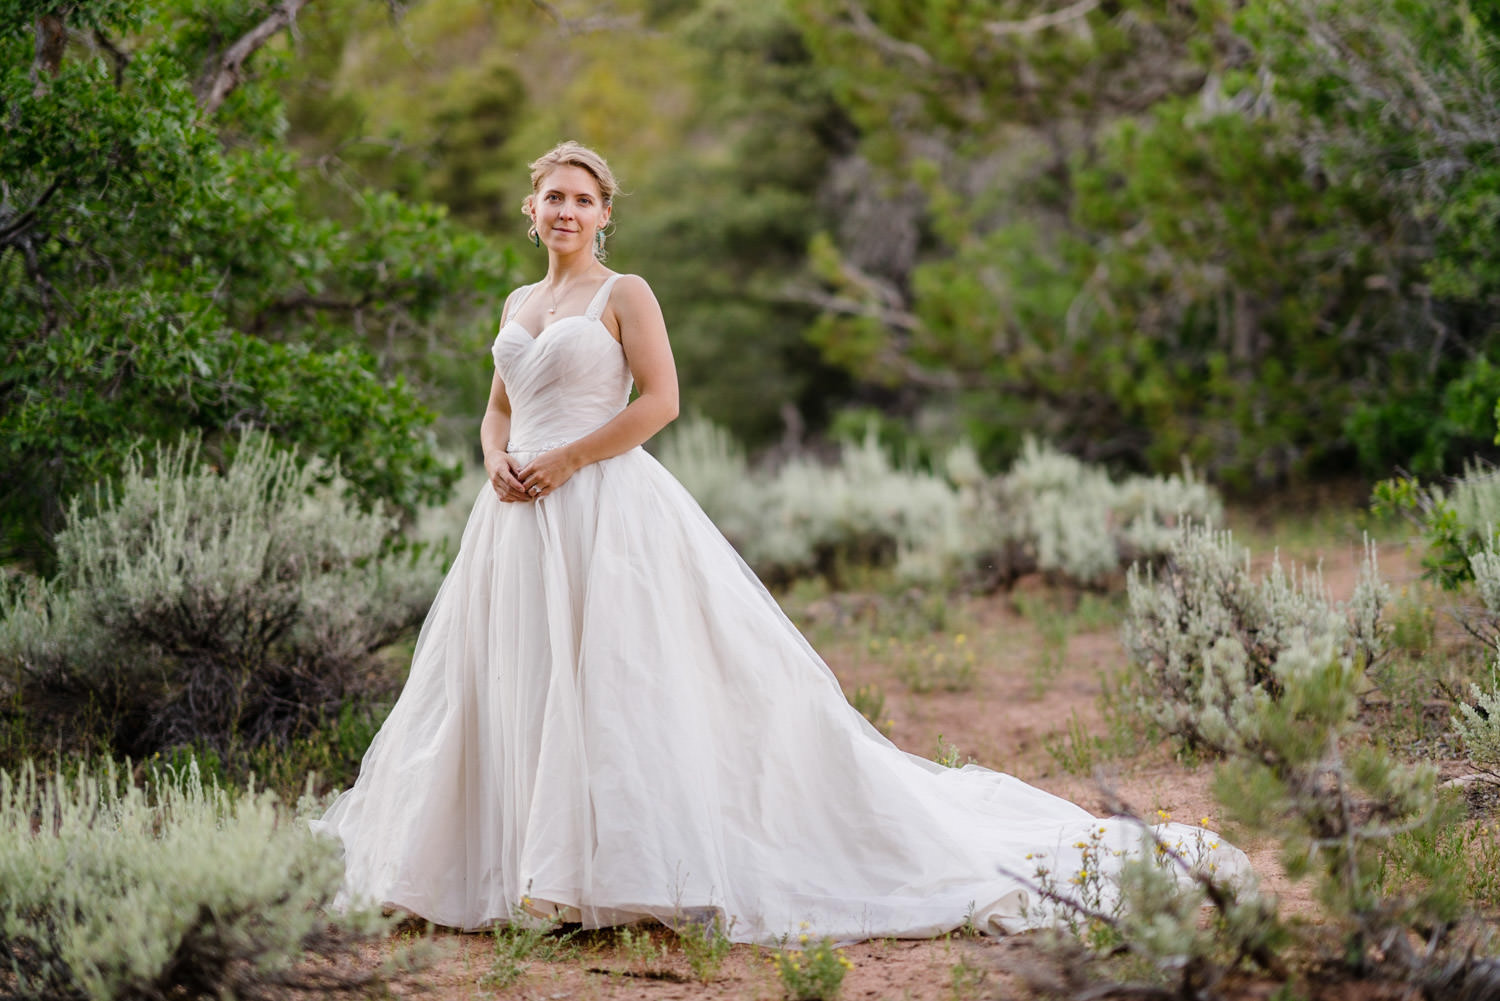 Zion National Park Wedding bride smiling